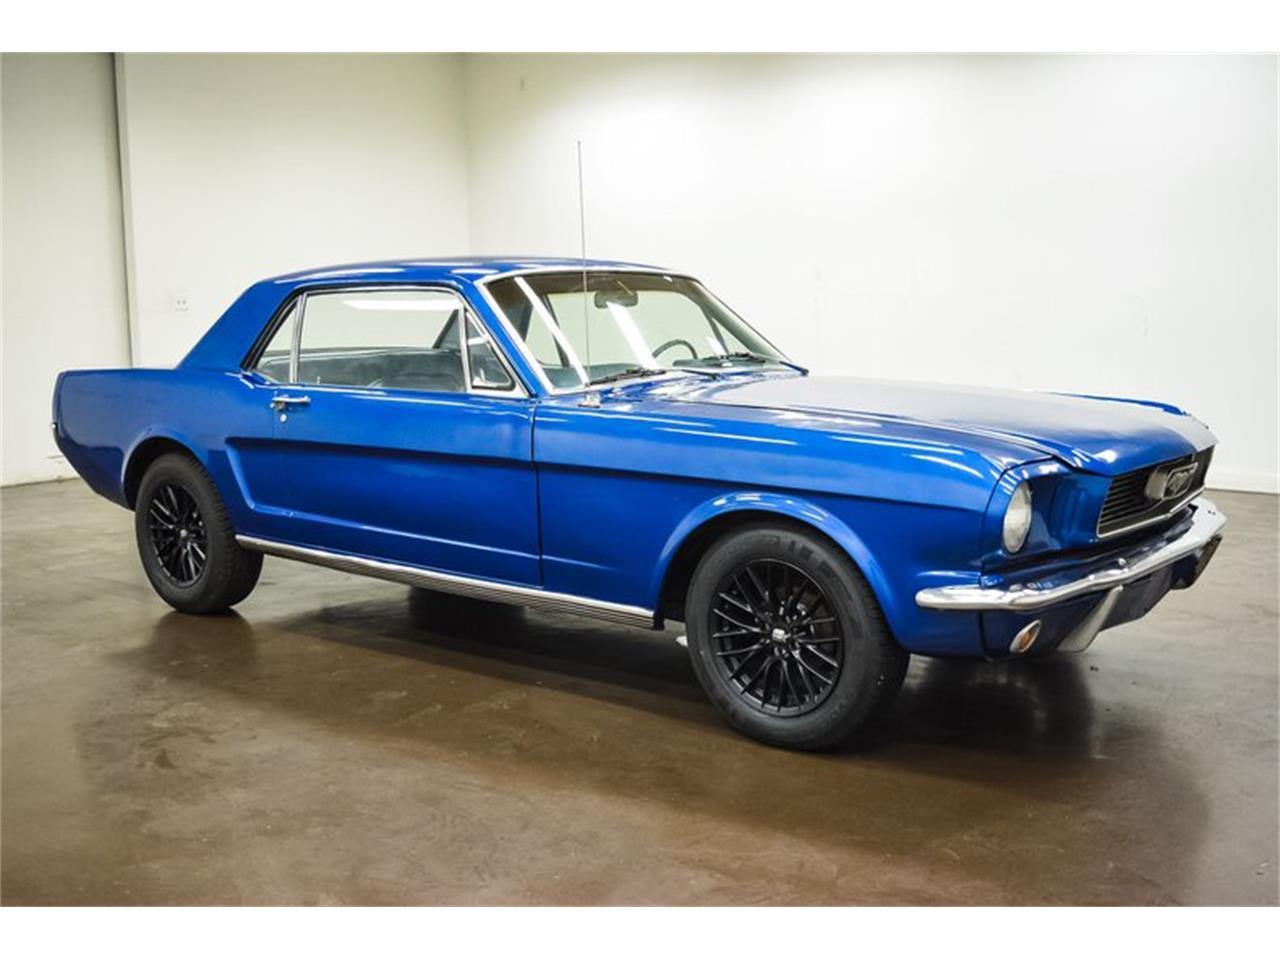 Ford Mustang 1966 prix tout compris 1966